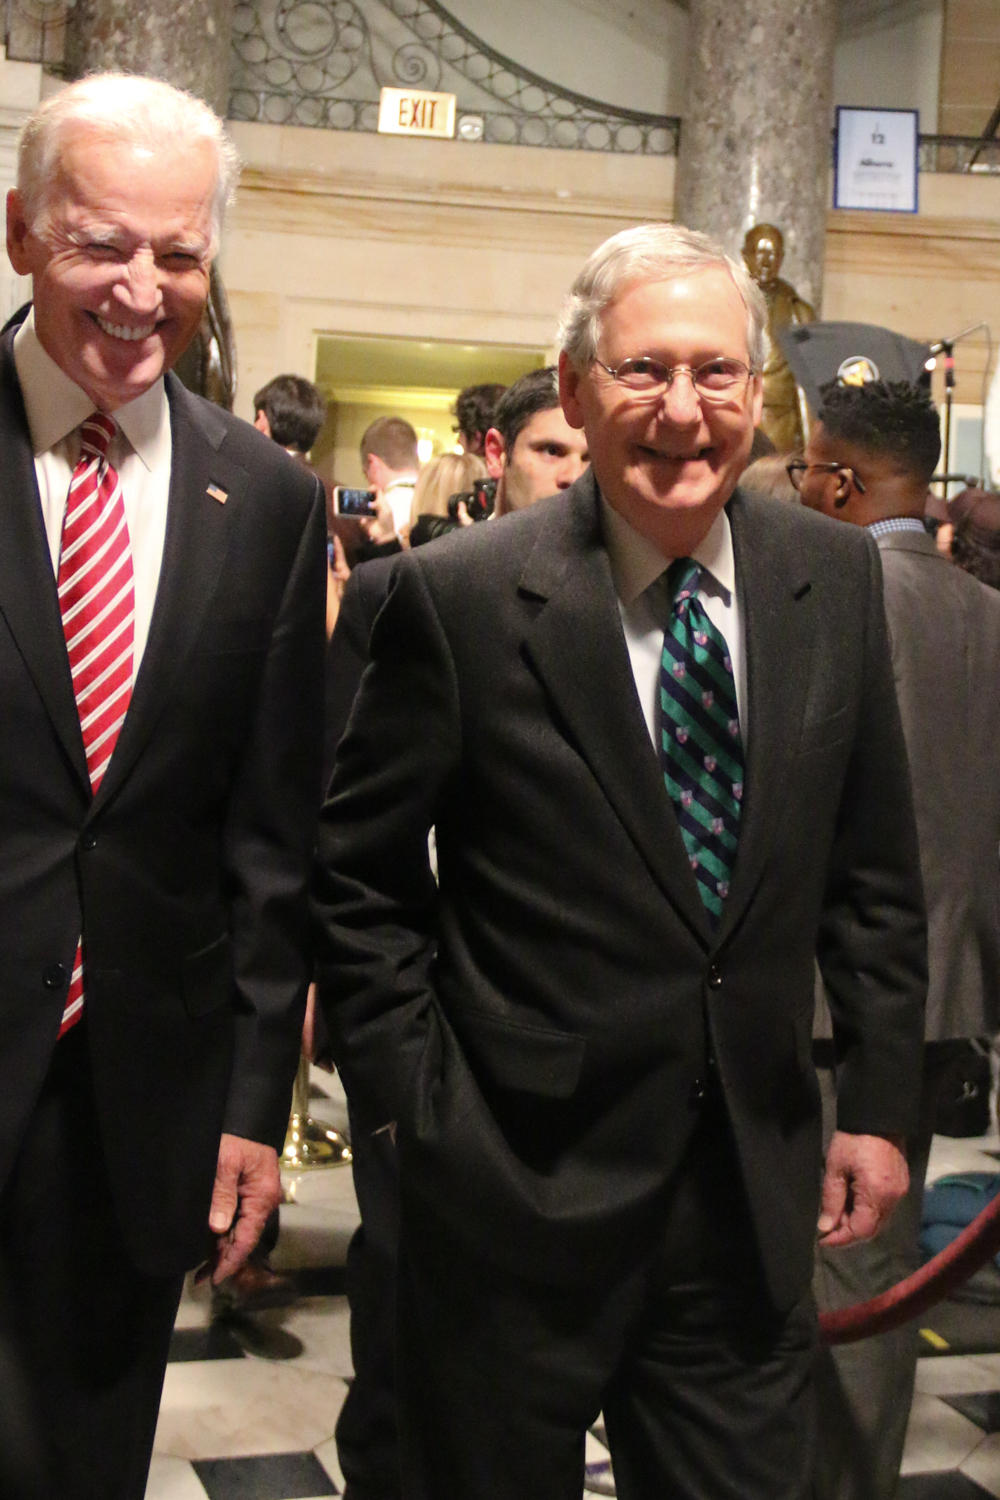 Vice President Joe Biden and Senate Majority Leader Mitch McConnell share a laugh before the State of the Union.